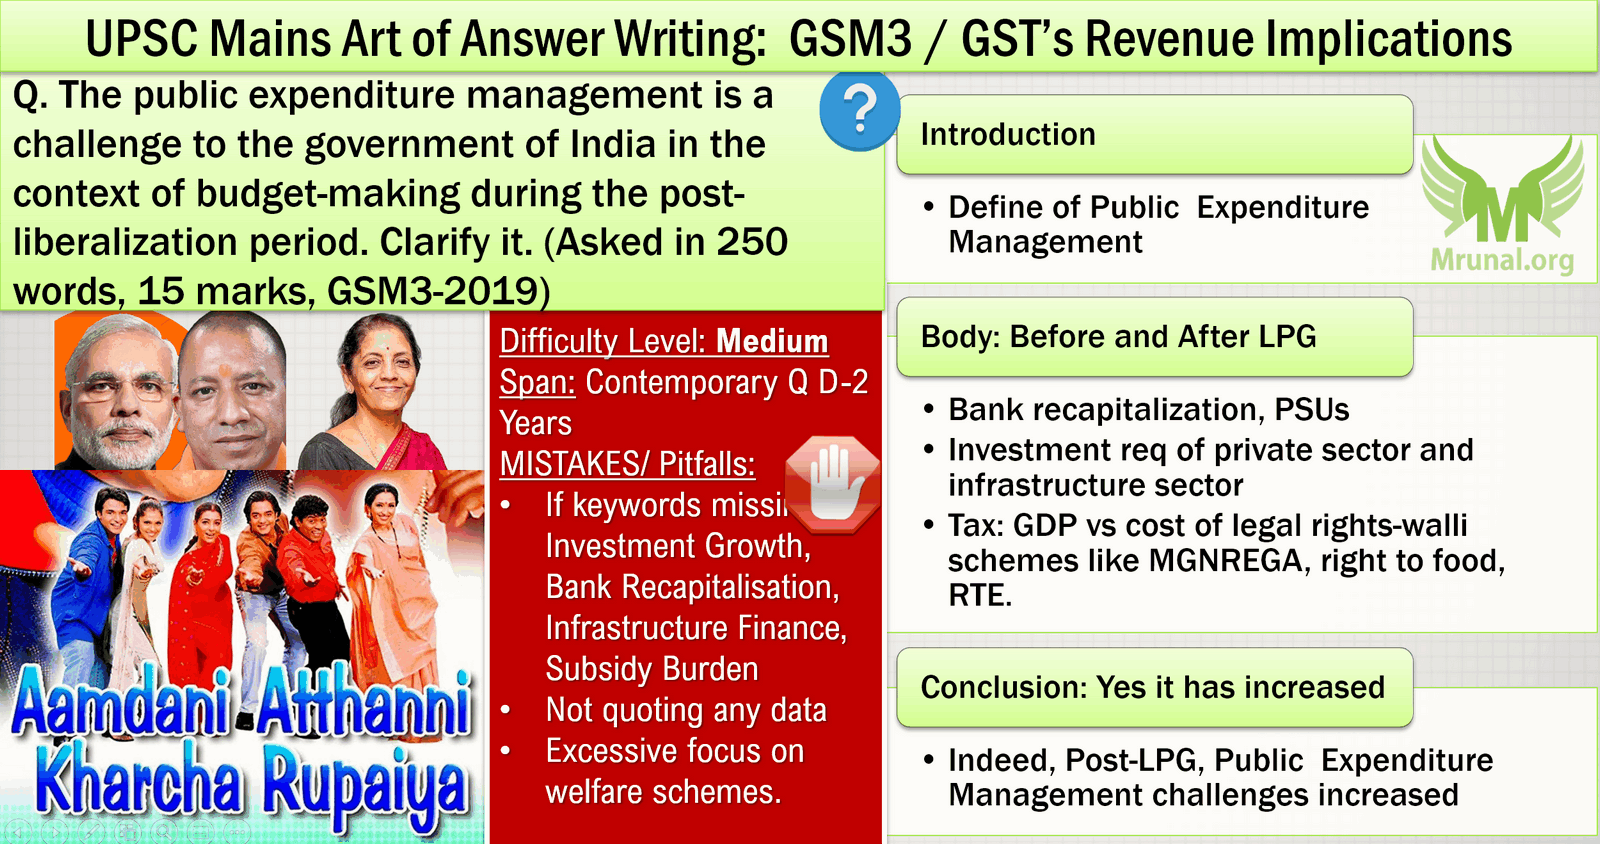 UPSC Mains Model Answer Writing Framework for public expenditure management for UPSC Mains GSM3